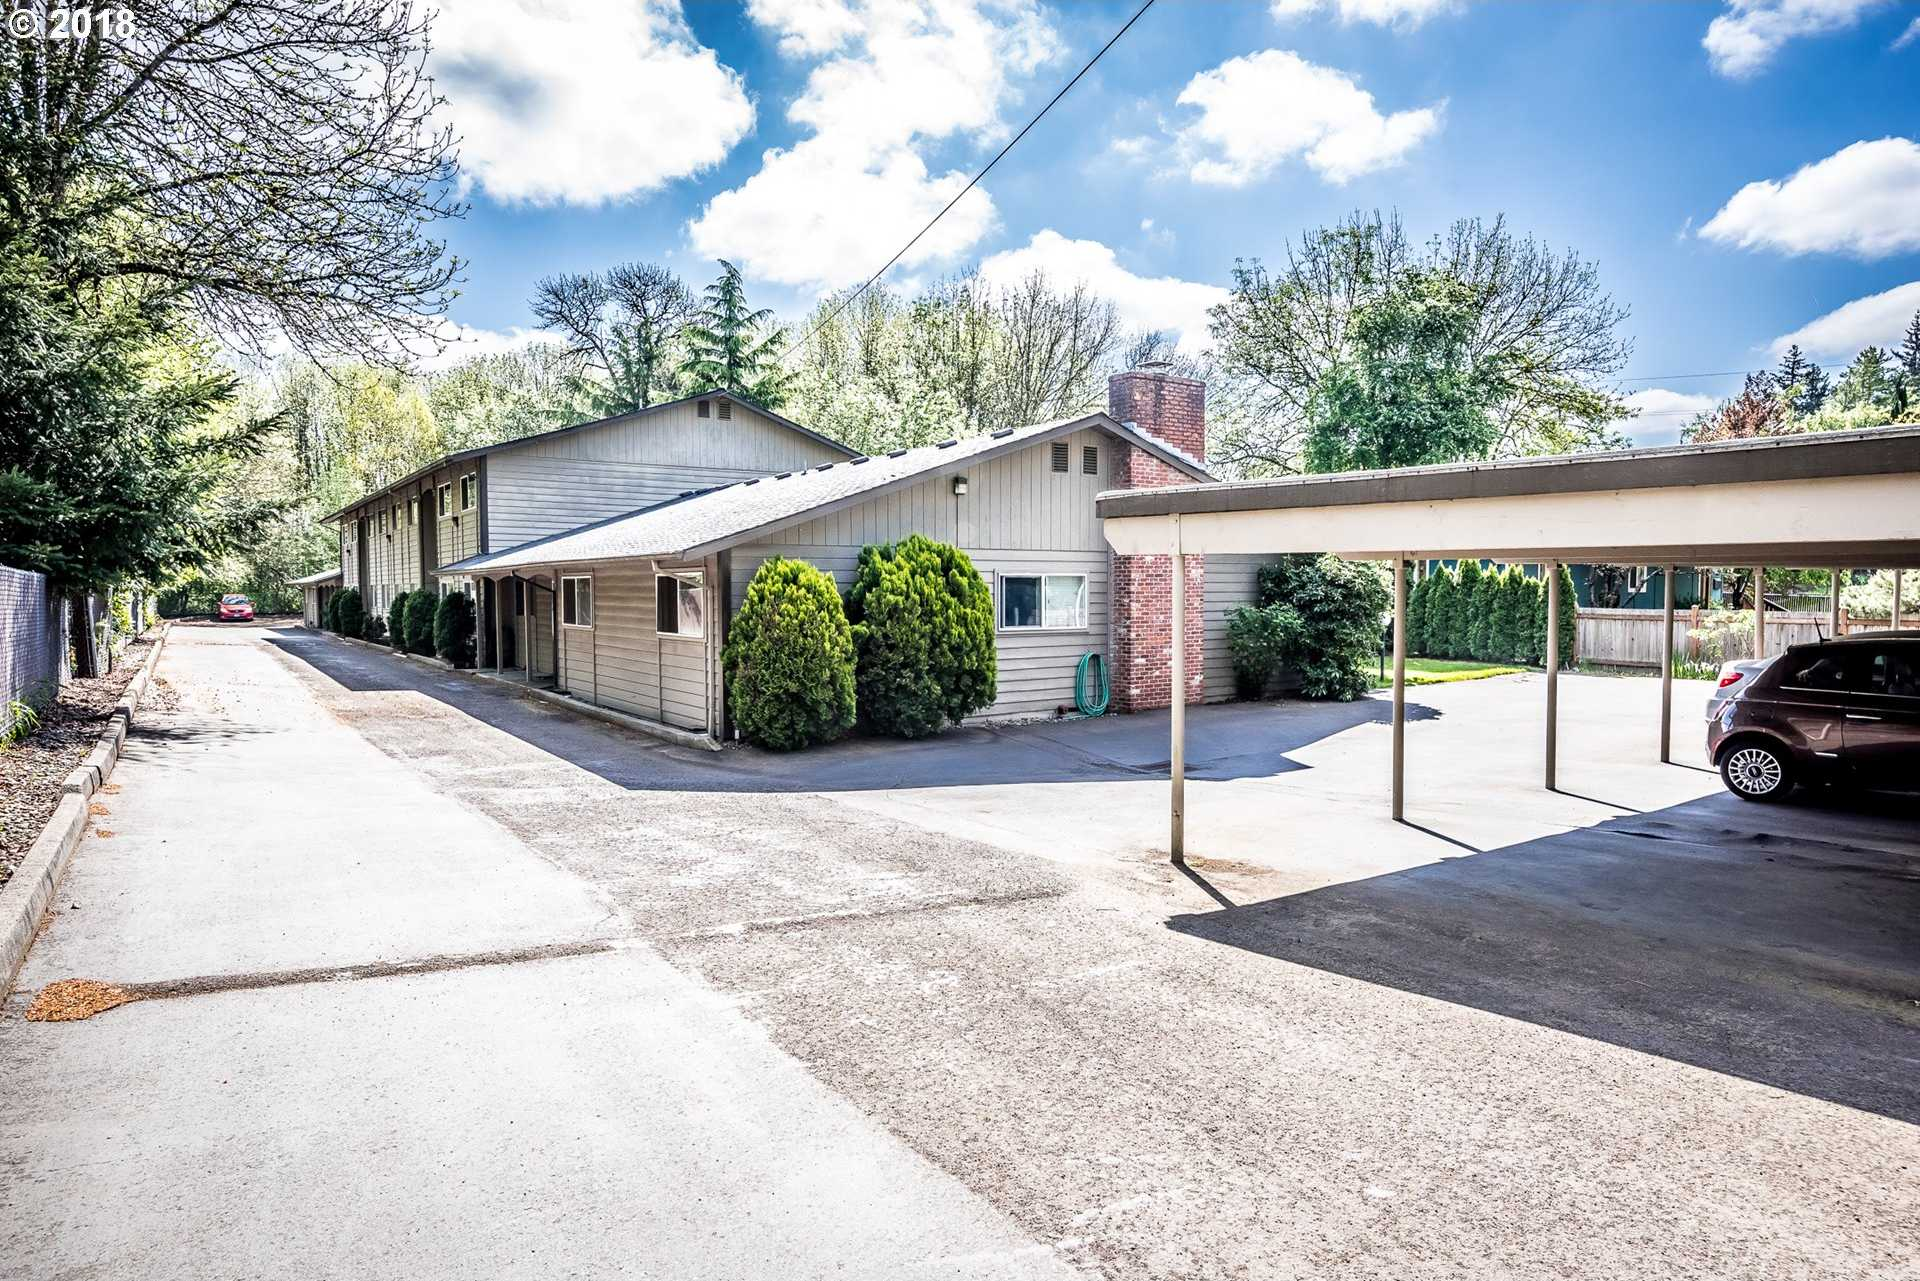 $170,000 - 2Br/1Ba -  for Sale in Denney Whitford / Raleigh West, Beaverton